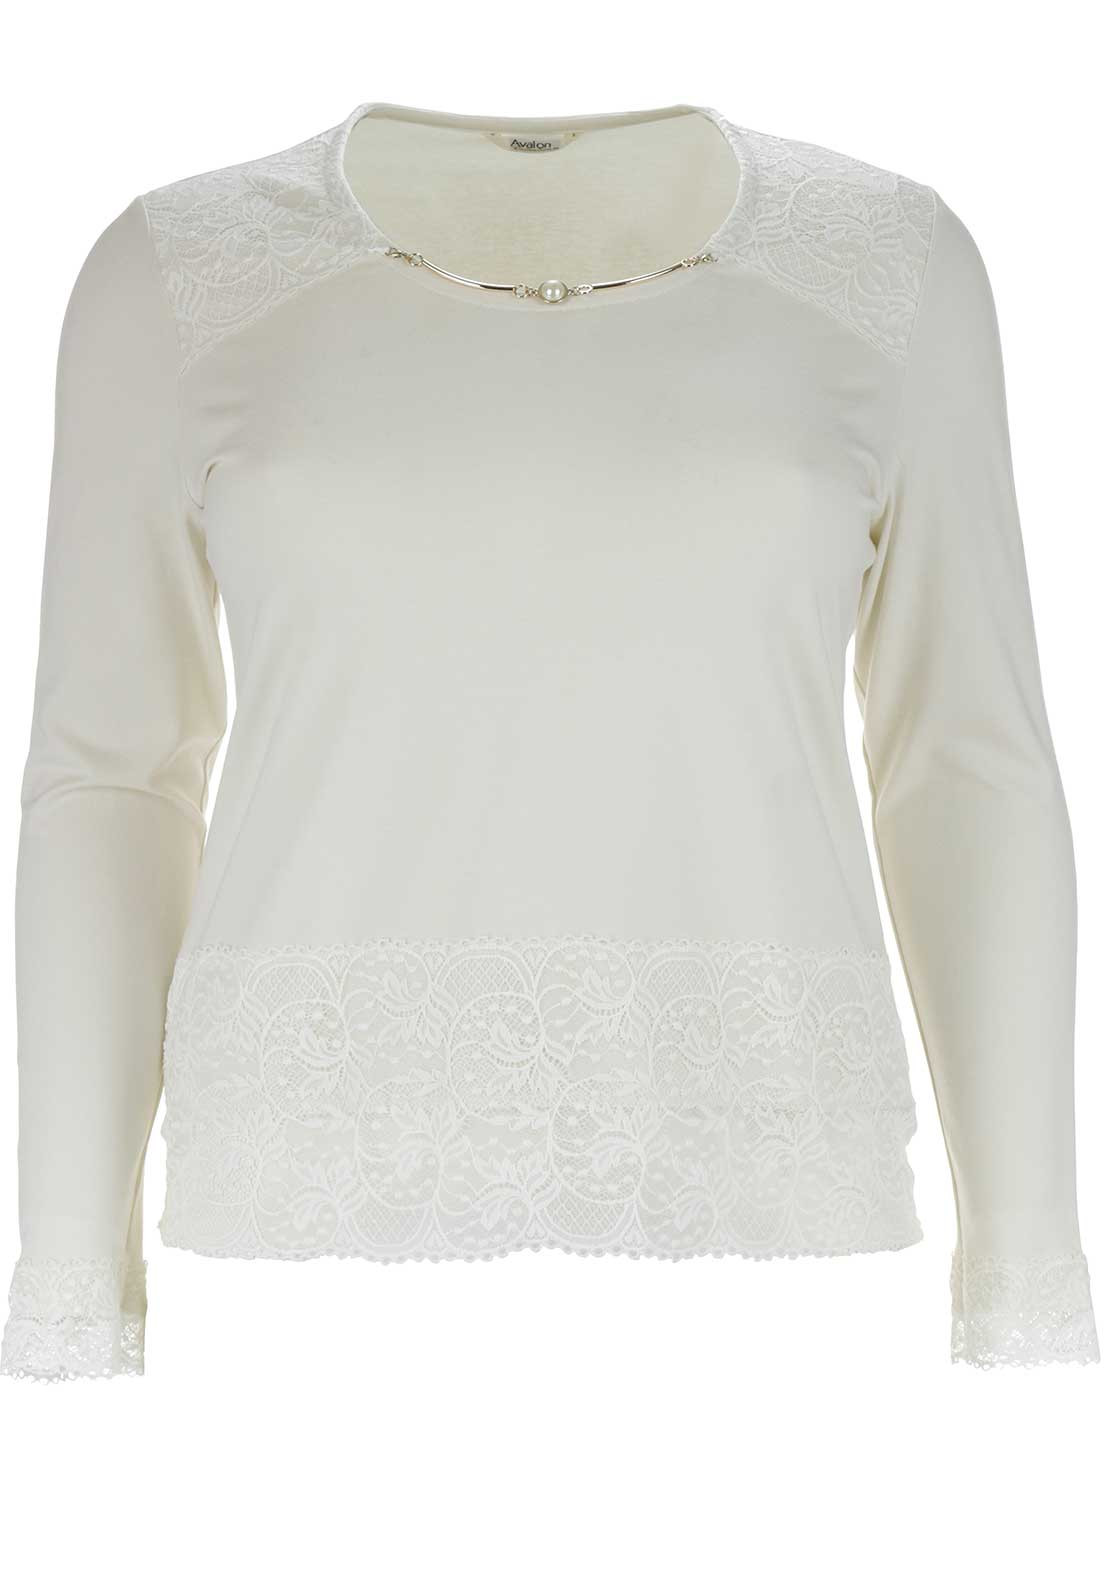 Avalon Lace Trim Long Sleeve Top, Cream